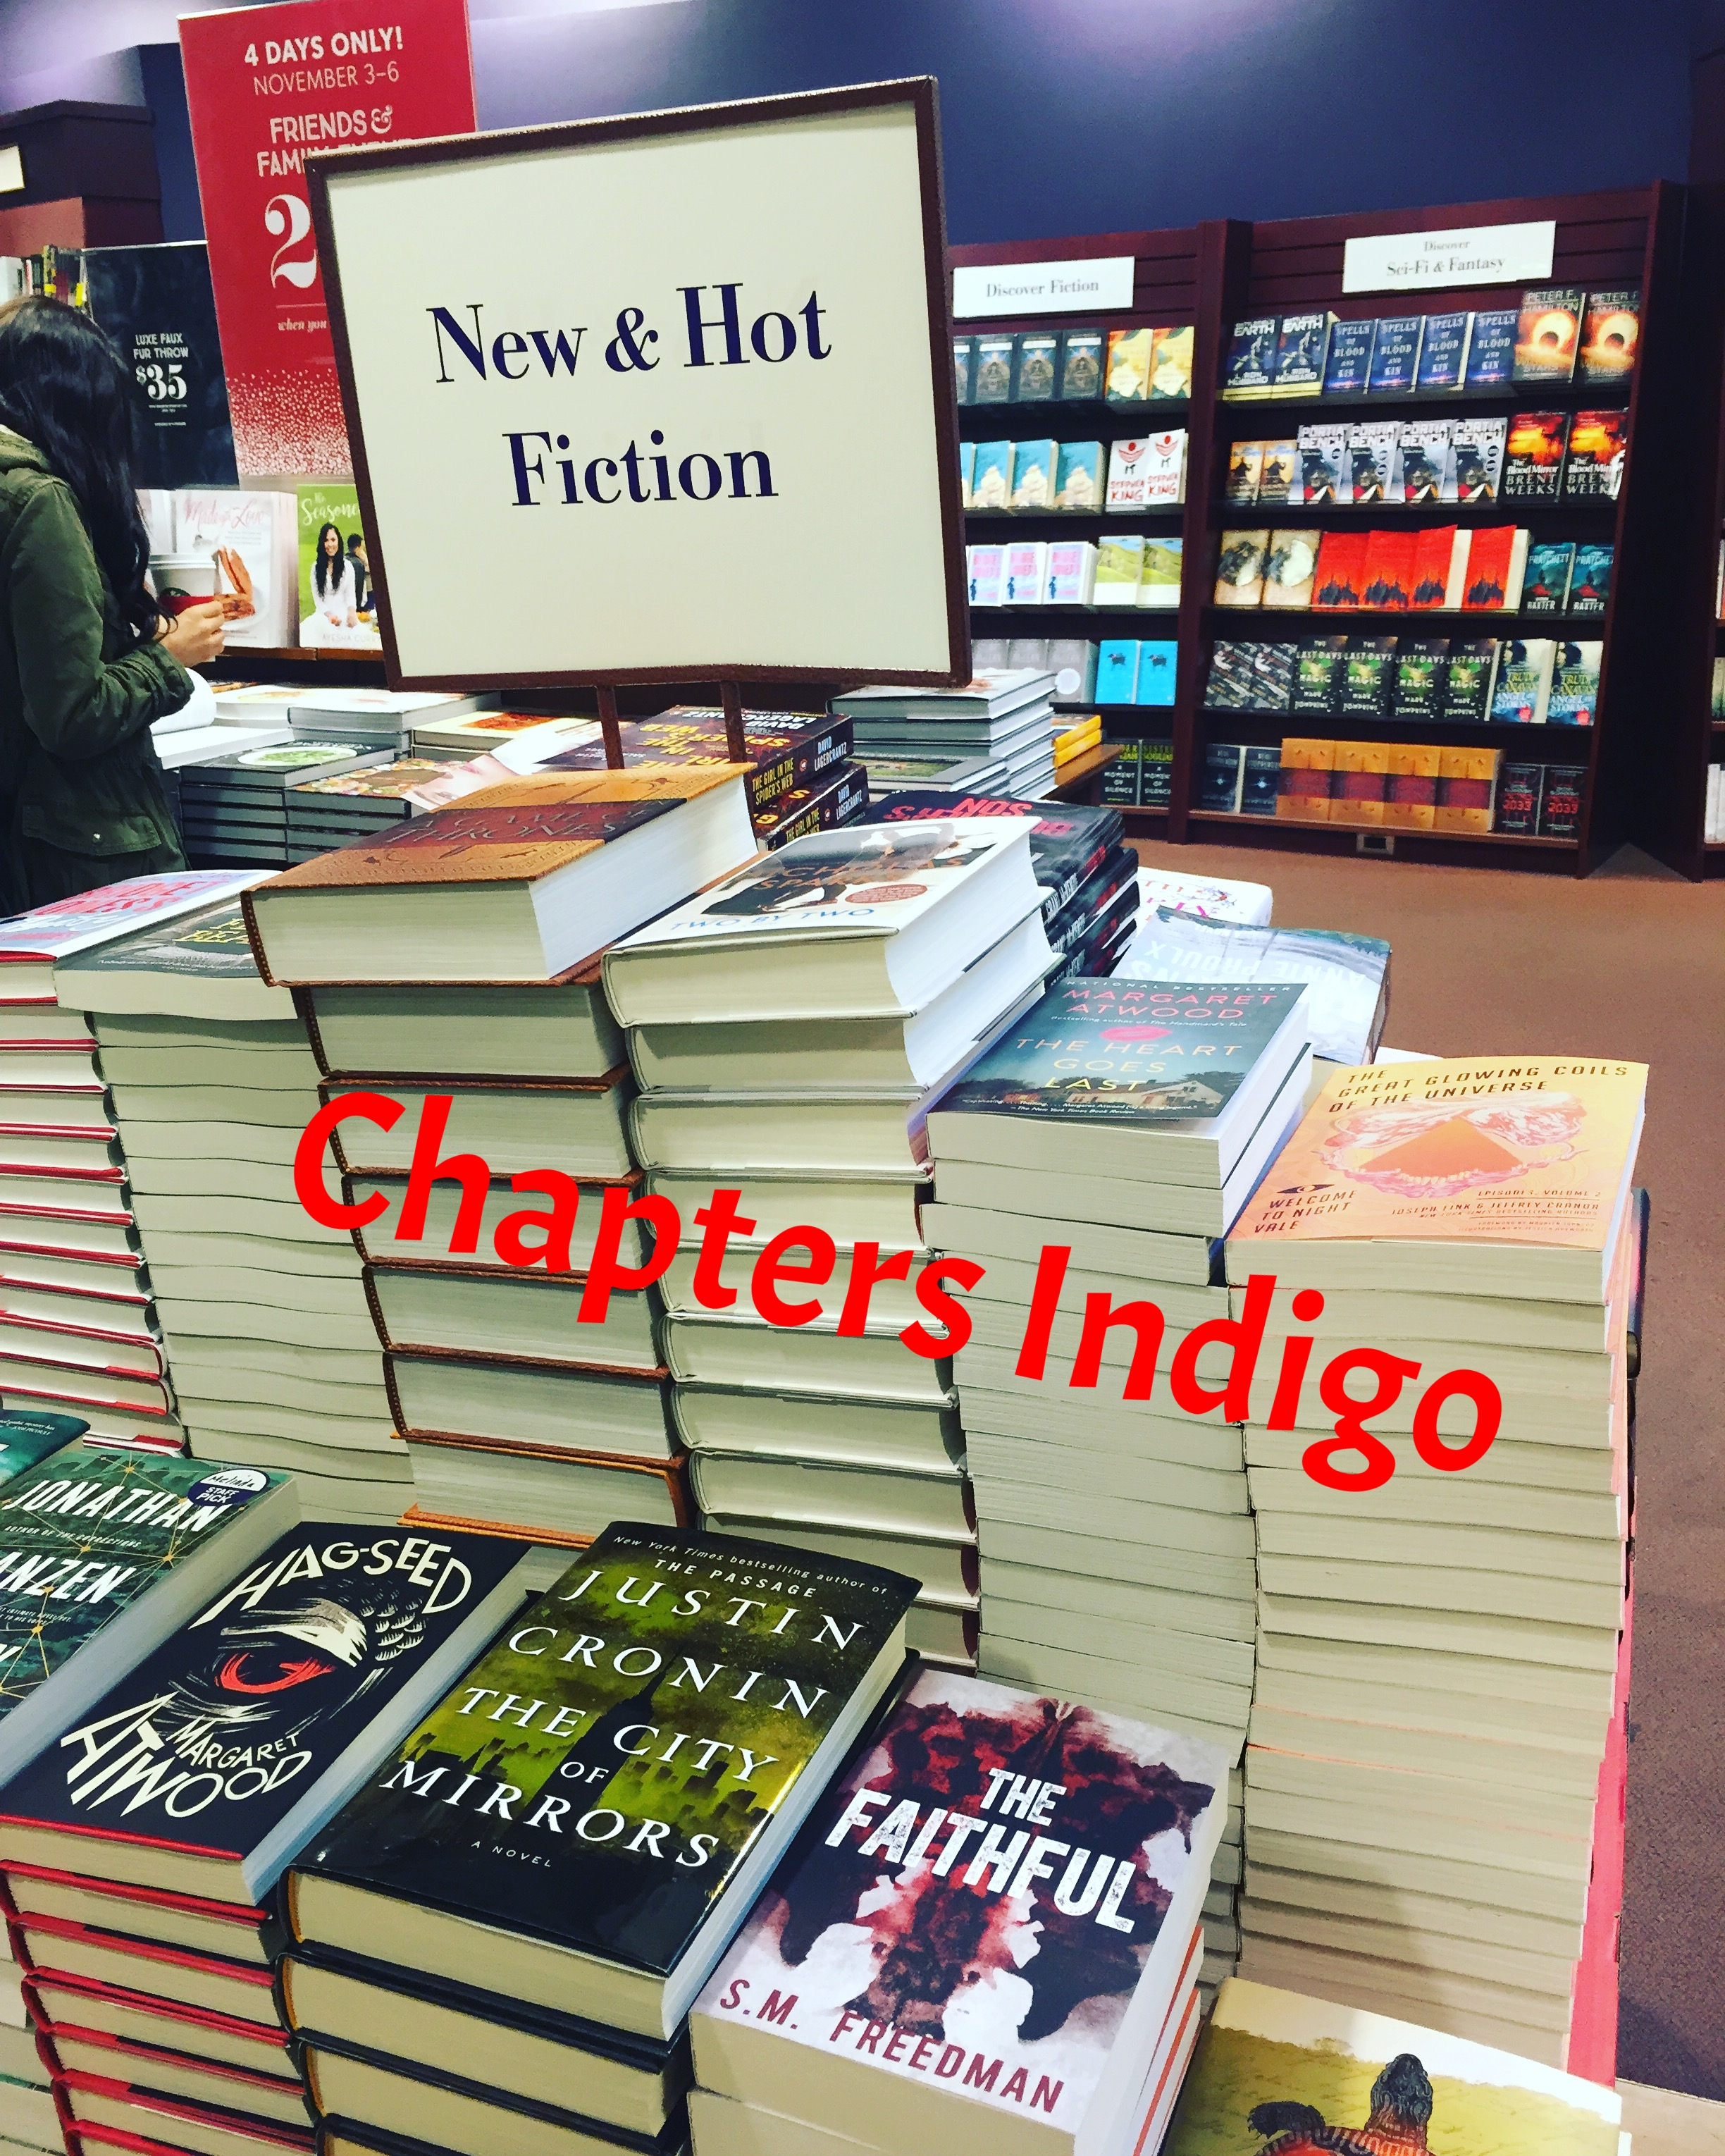 There is some hot fiction at Chapters Indigo